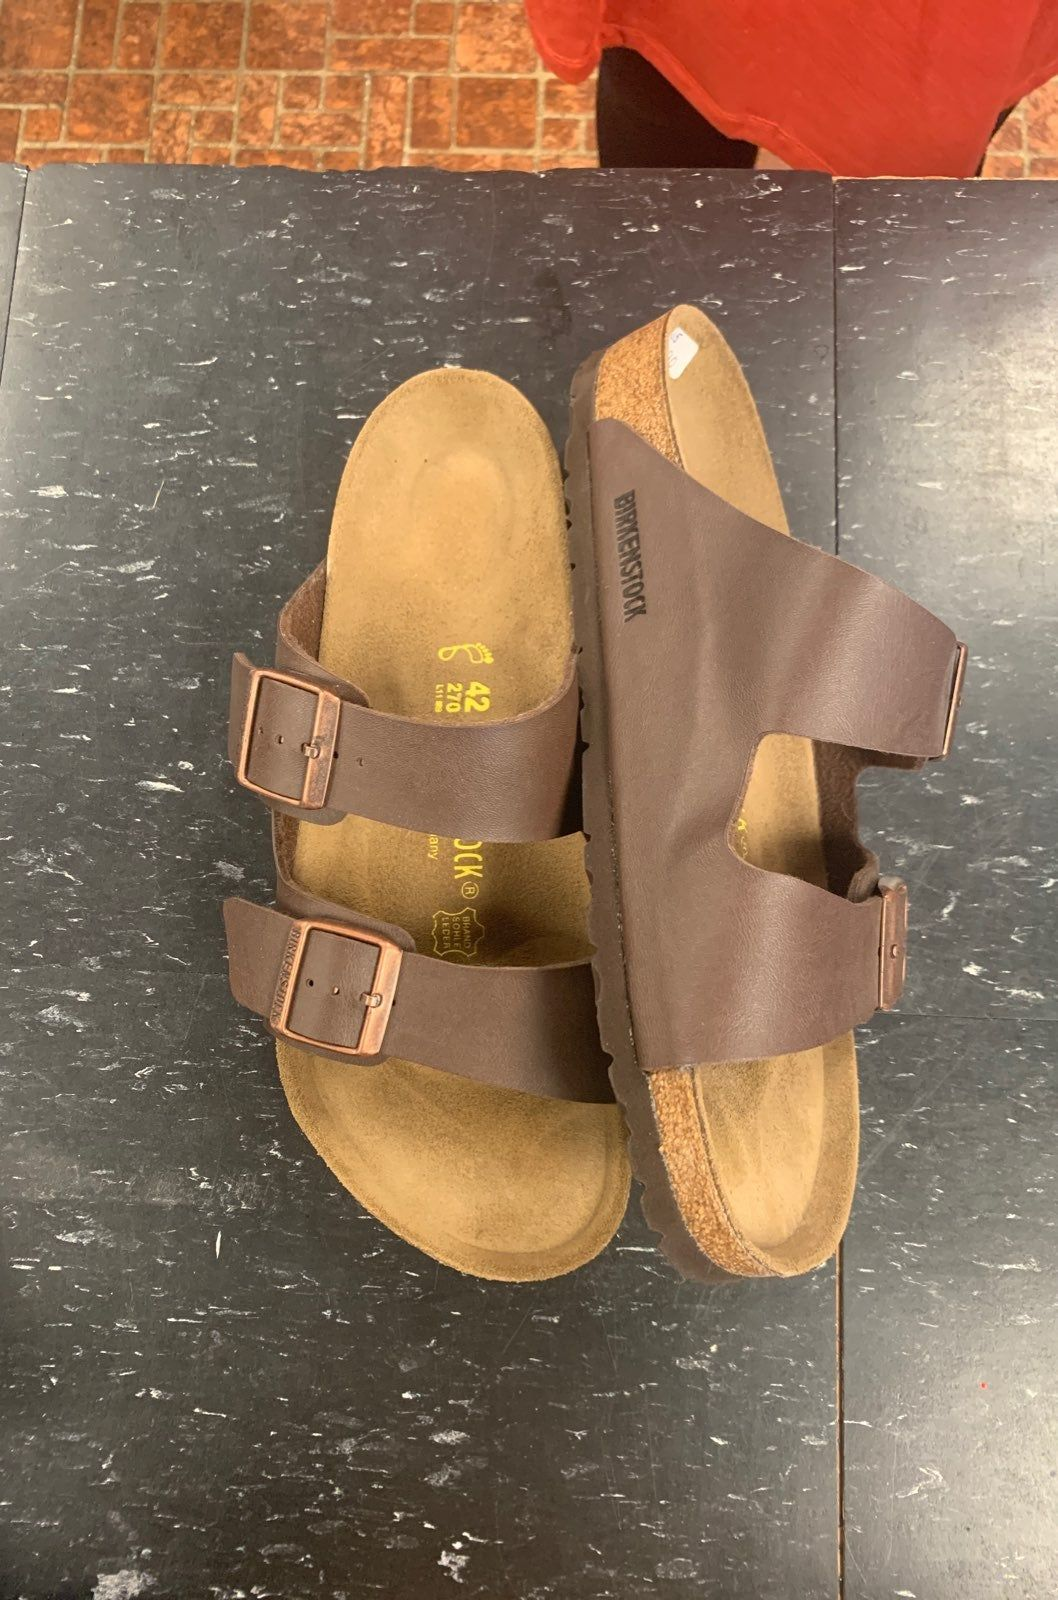 5480af8aef814e2b1eb76f69ba52575e - How Do I Know What Size Birkenstocks To Get